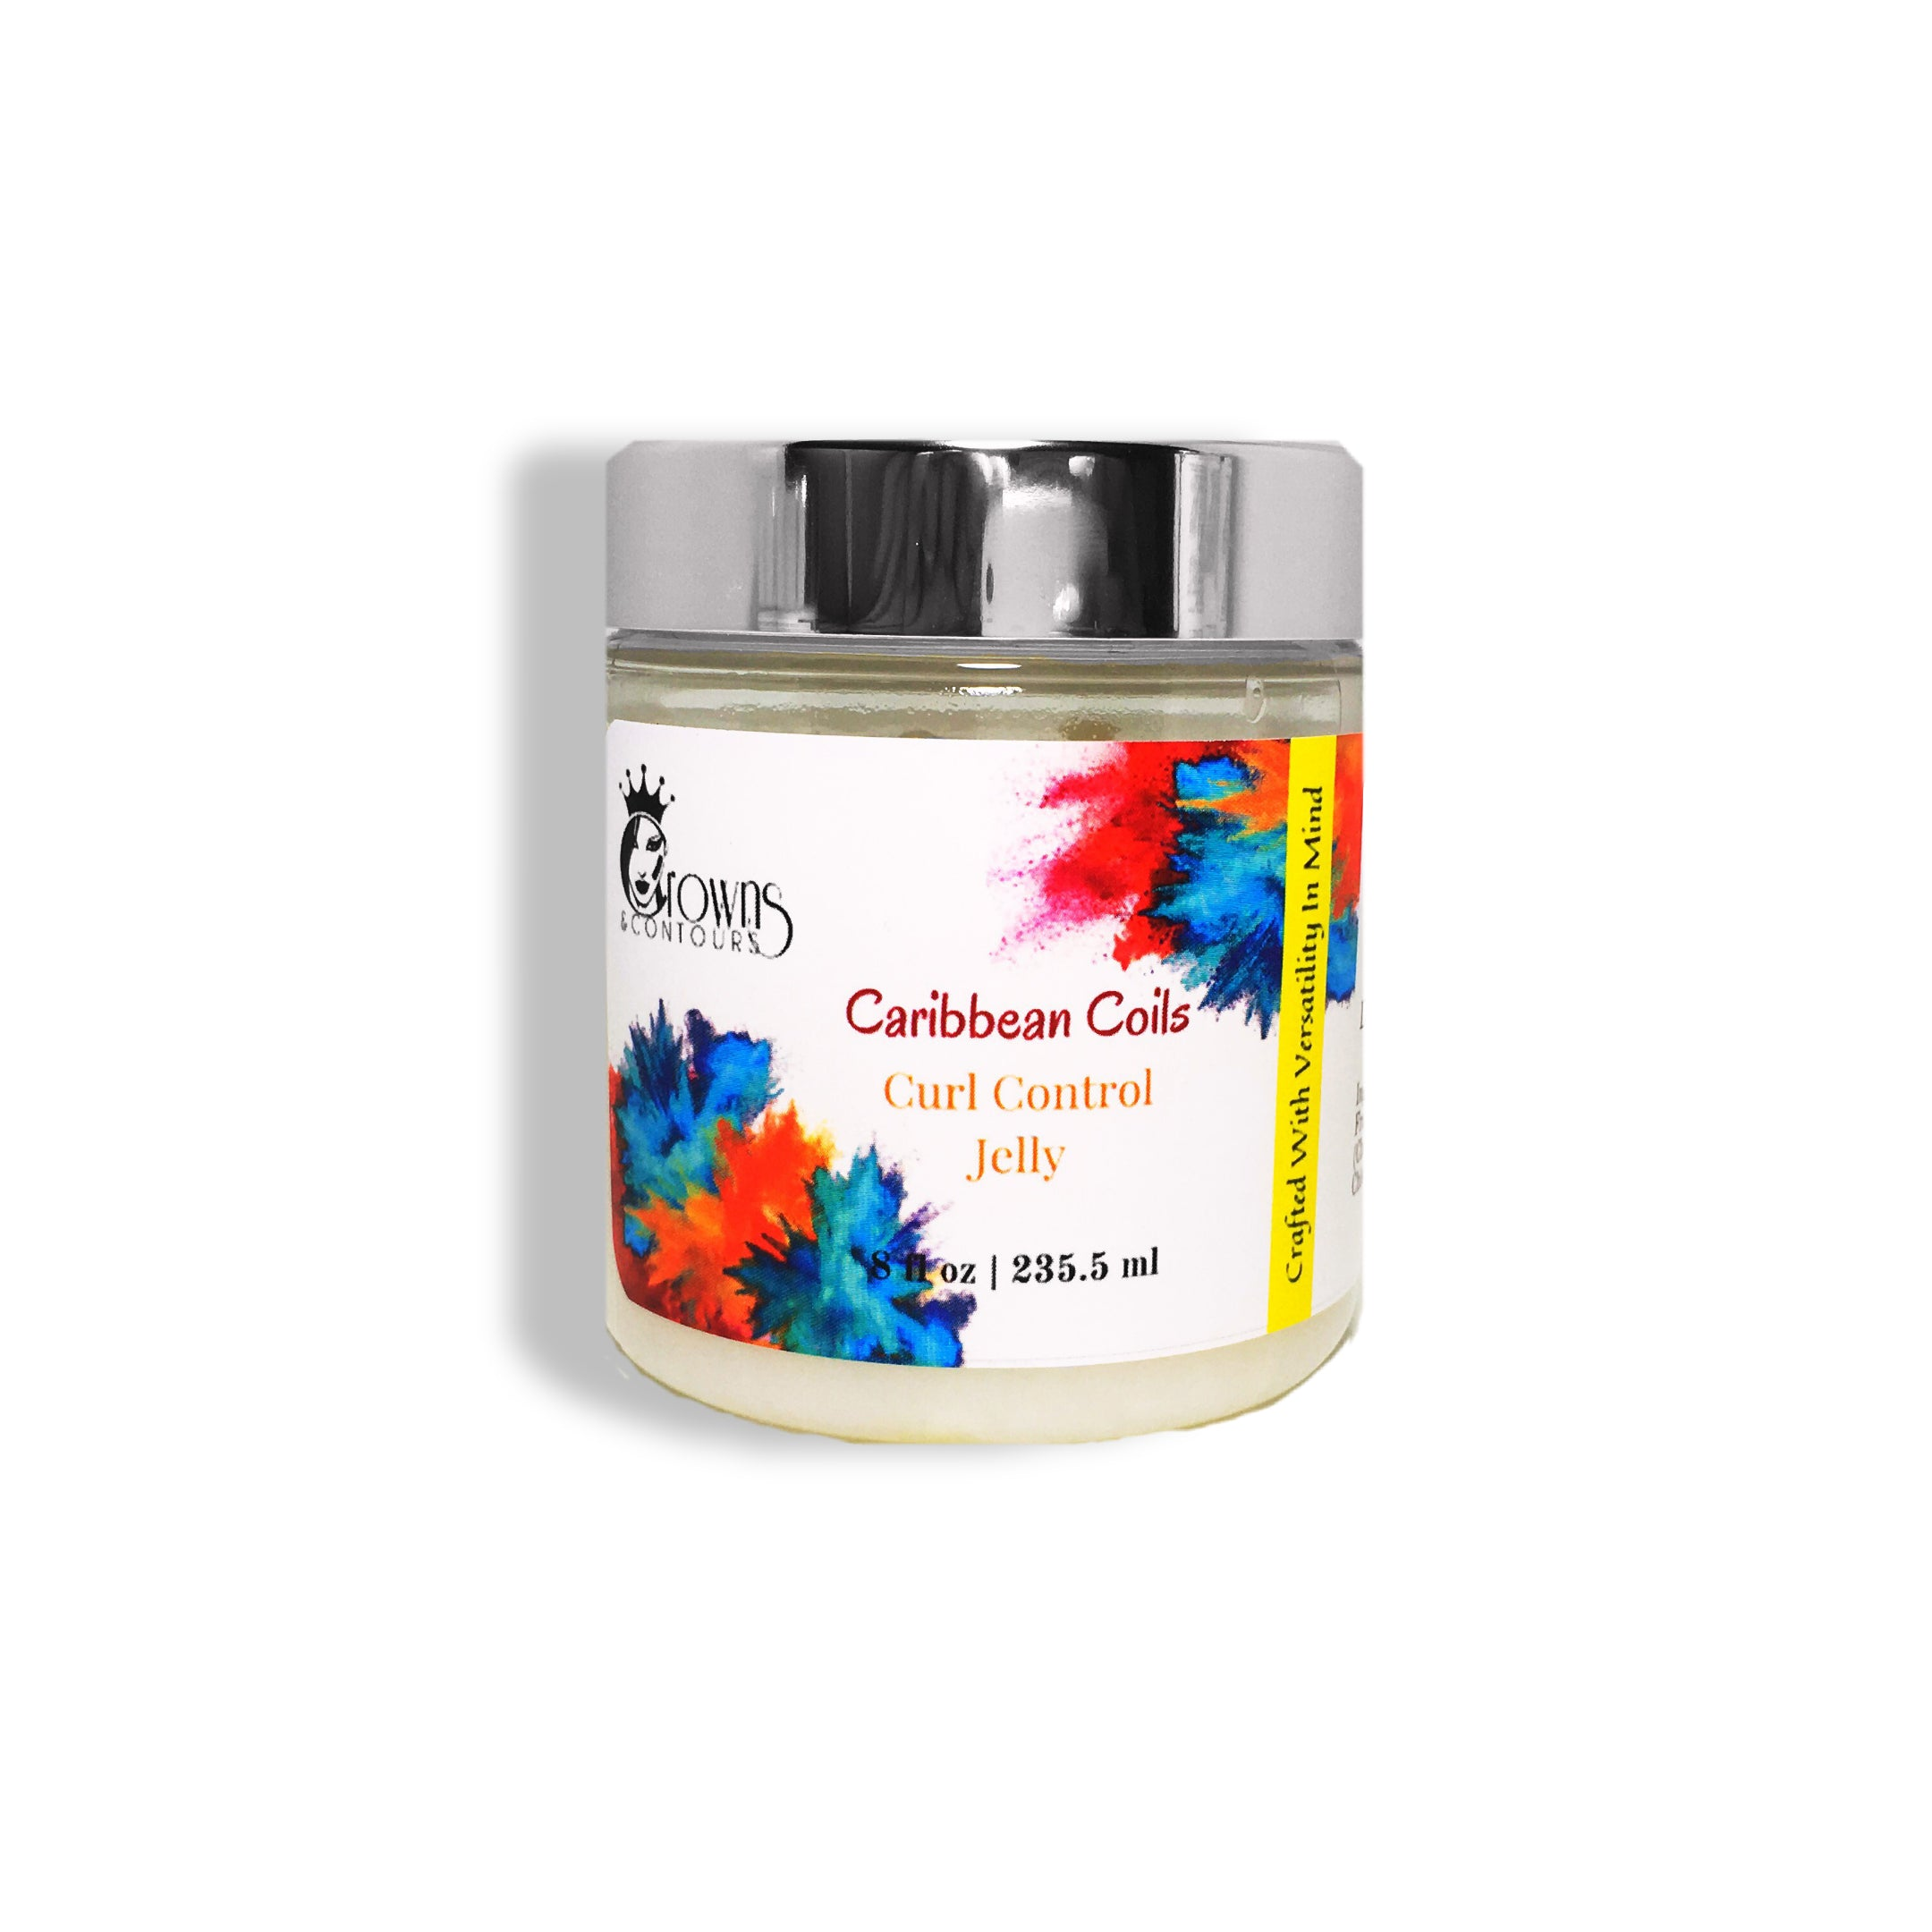 Caribbean Coils Curl Control Jelly